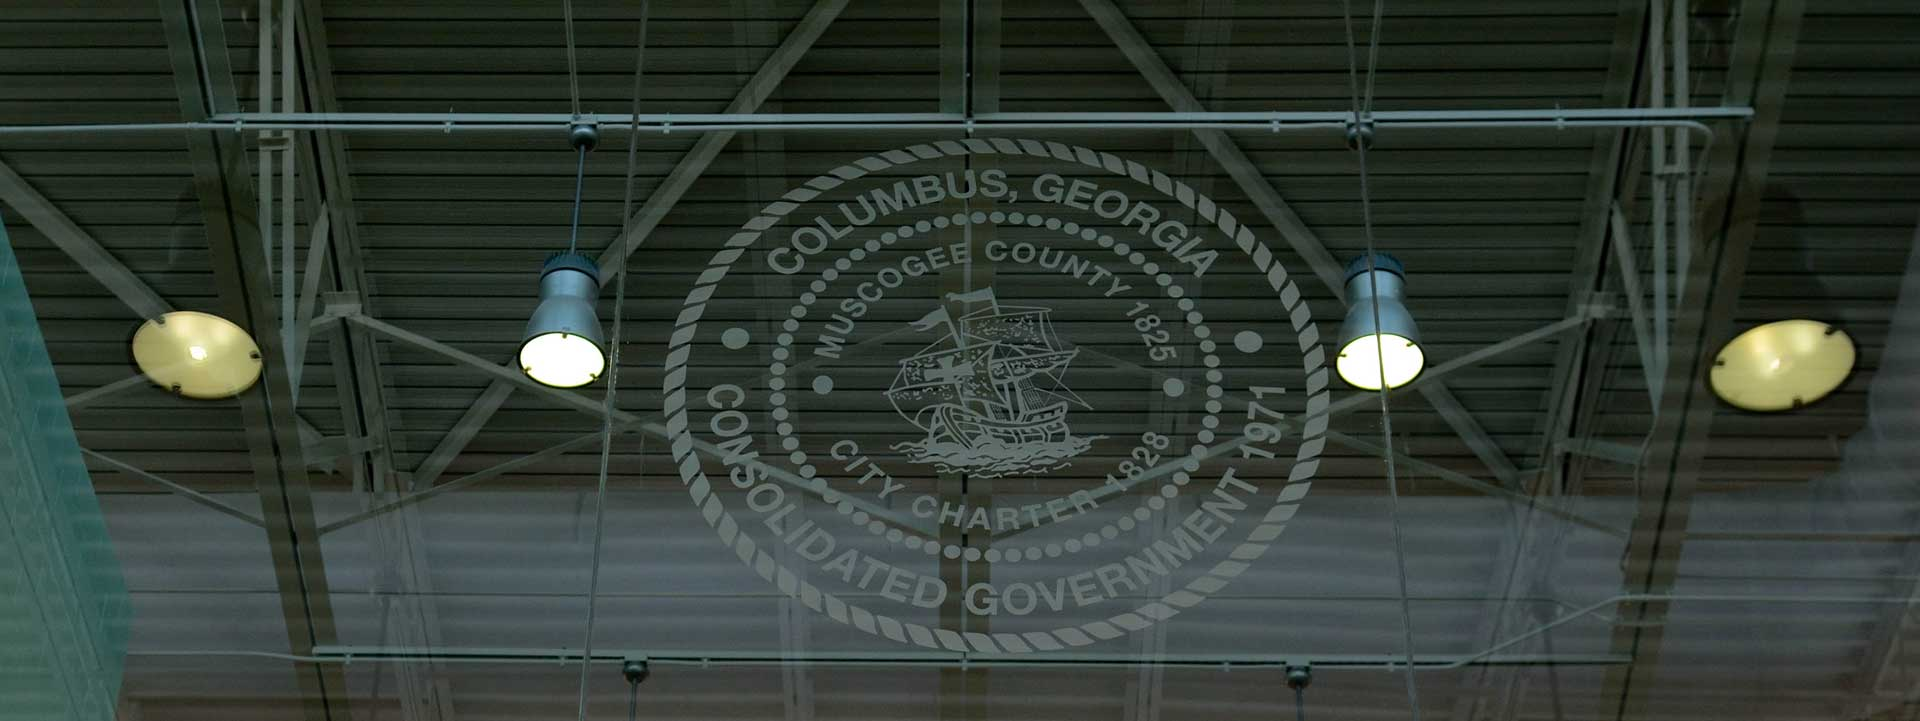 Columbus Consolidated Government